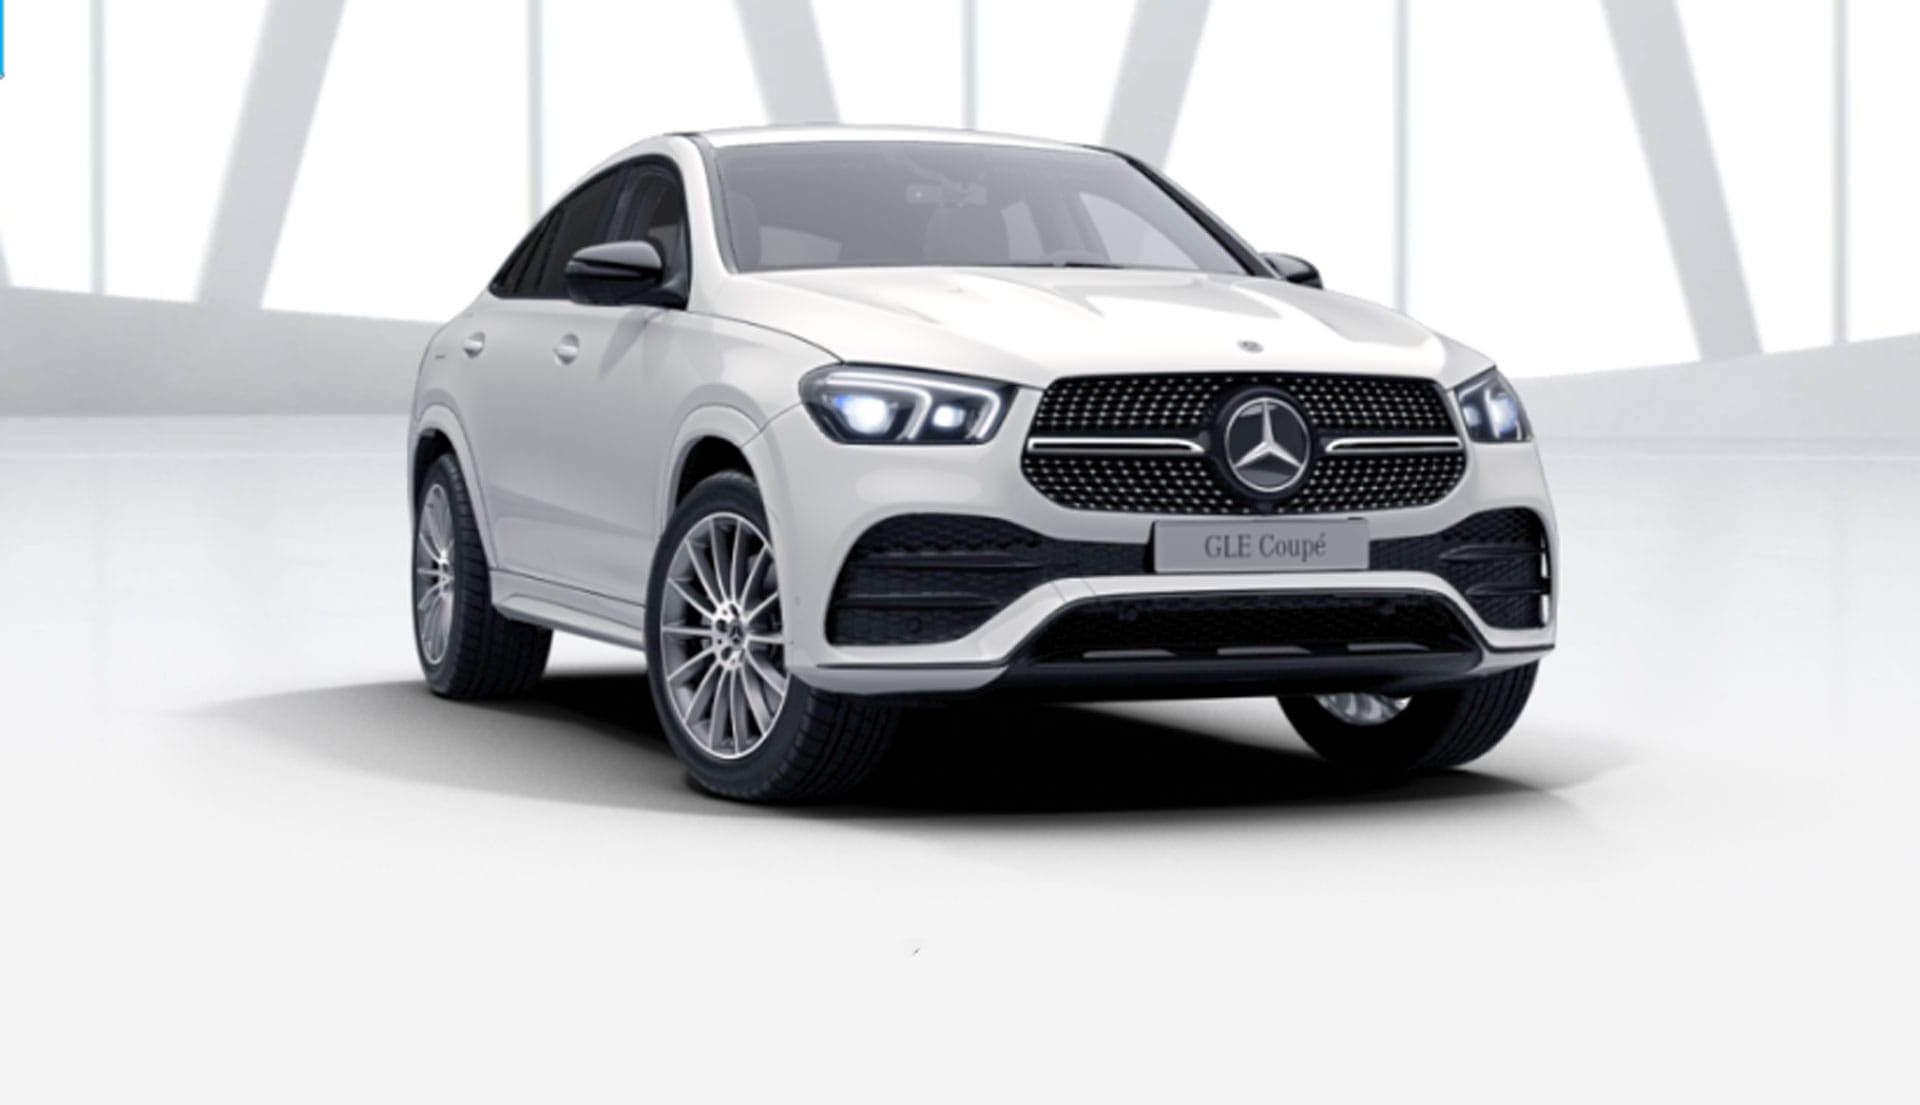 Mercedes-Benz GLE Coupe 0152606062